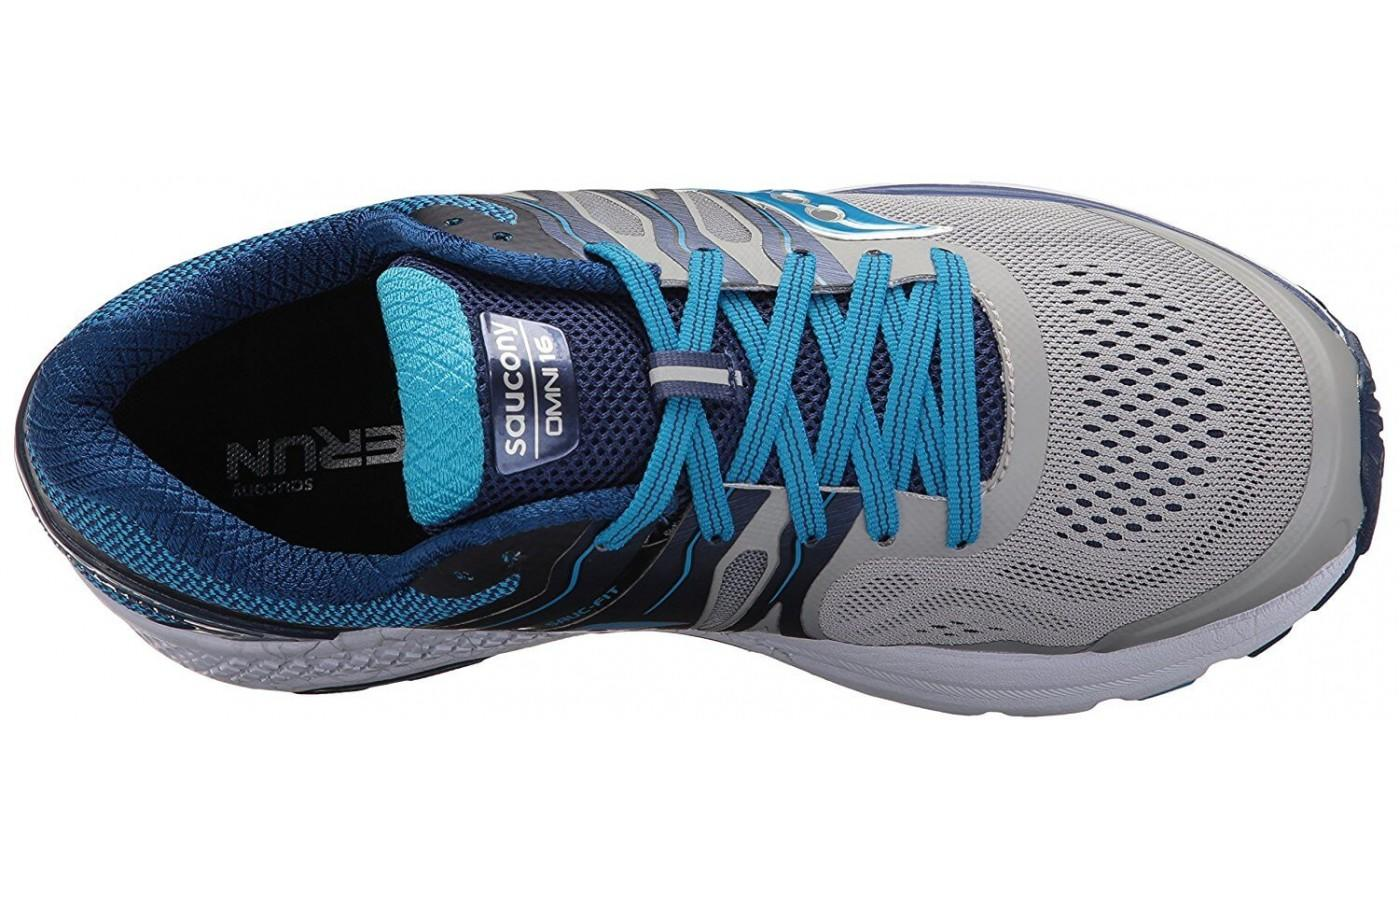 The upper is breathable and flexible.